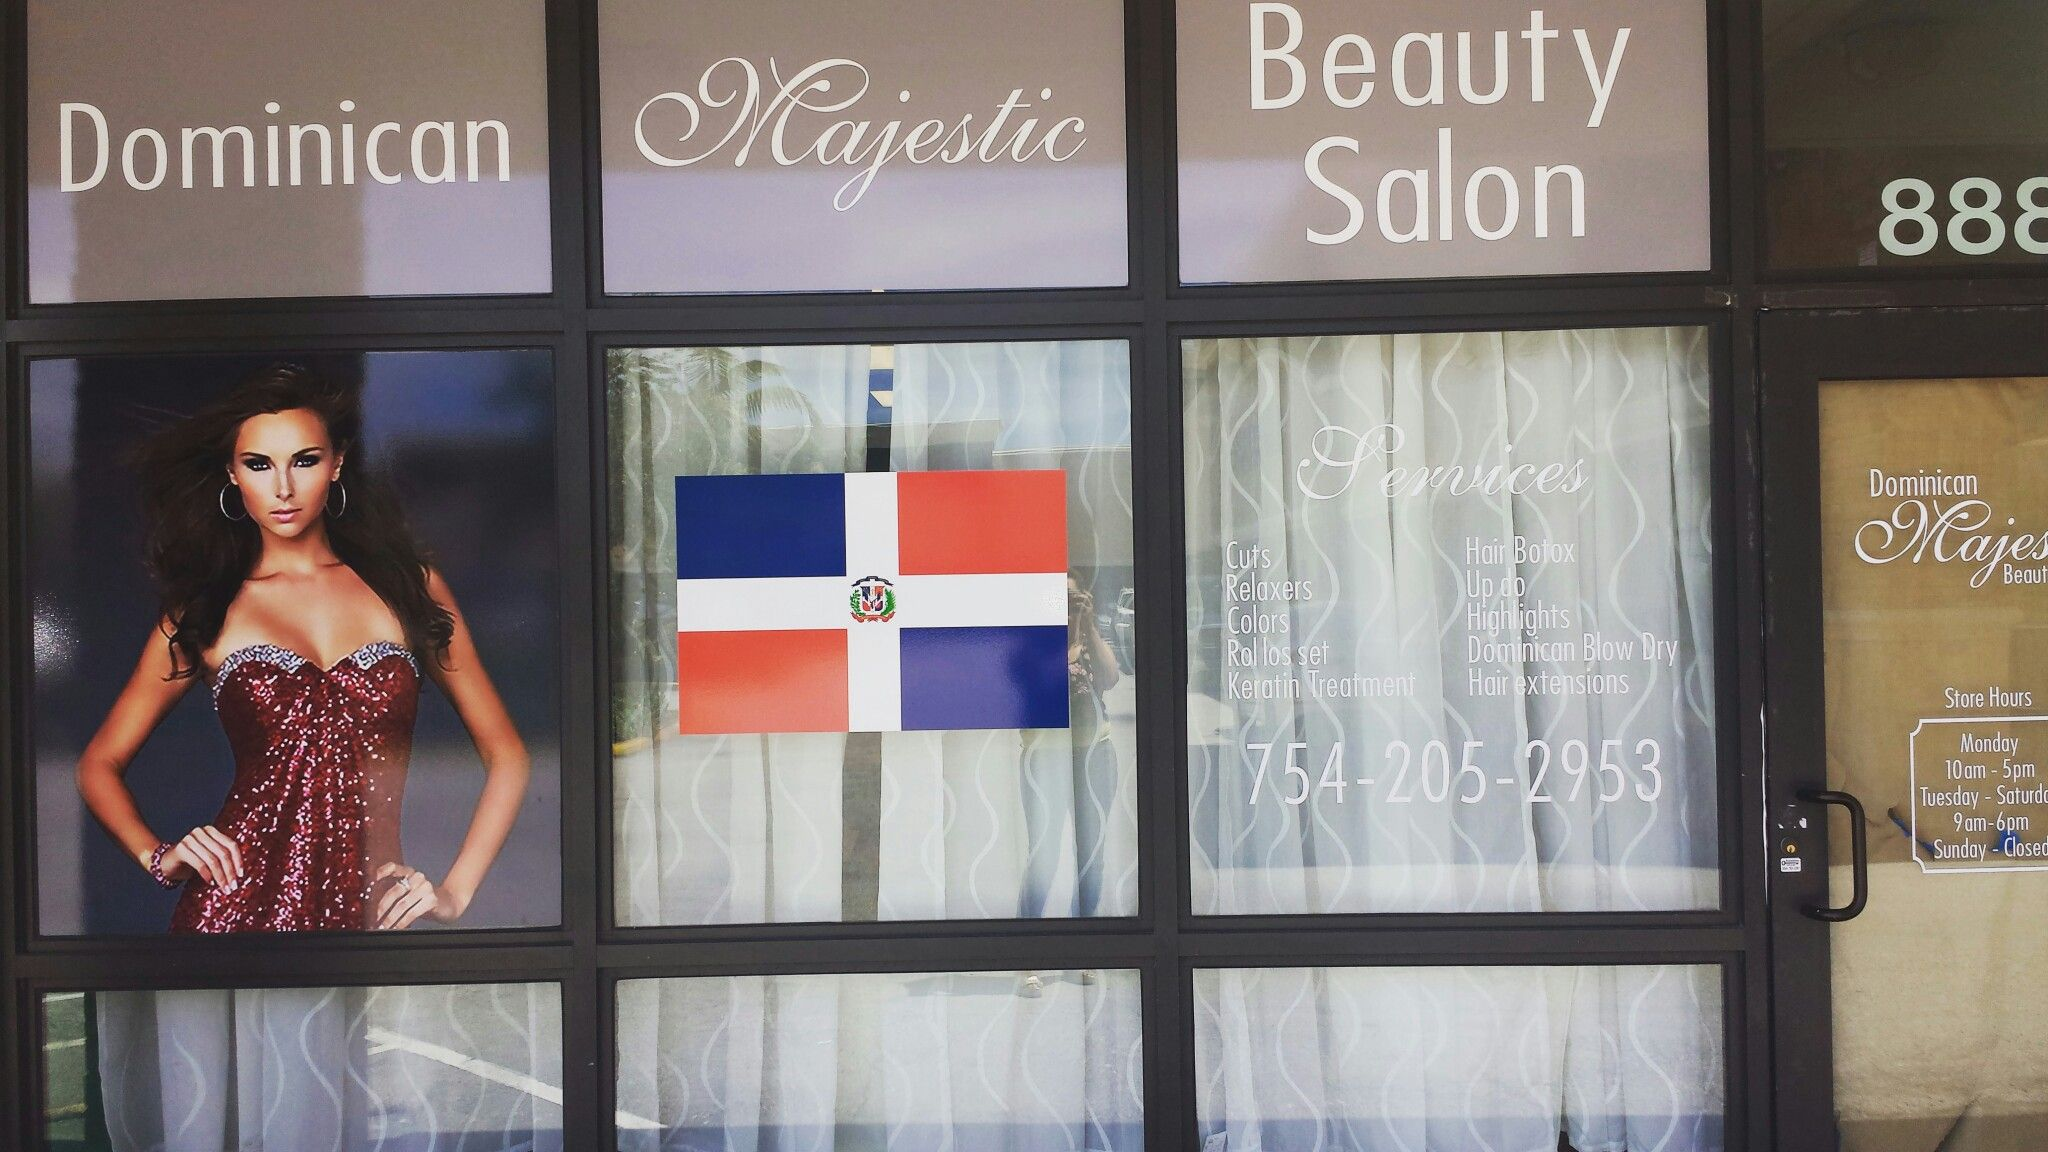 Welcome To Dominican Majestic Beauty Salon 888 N Federal Highway Pompano Beach Fl 33062 754 205 2953